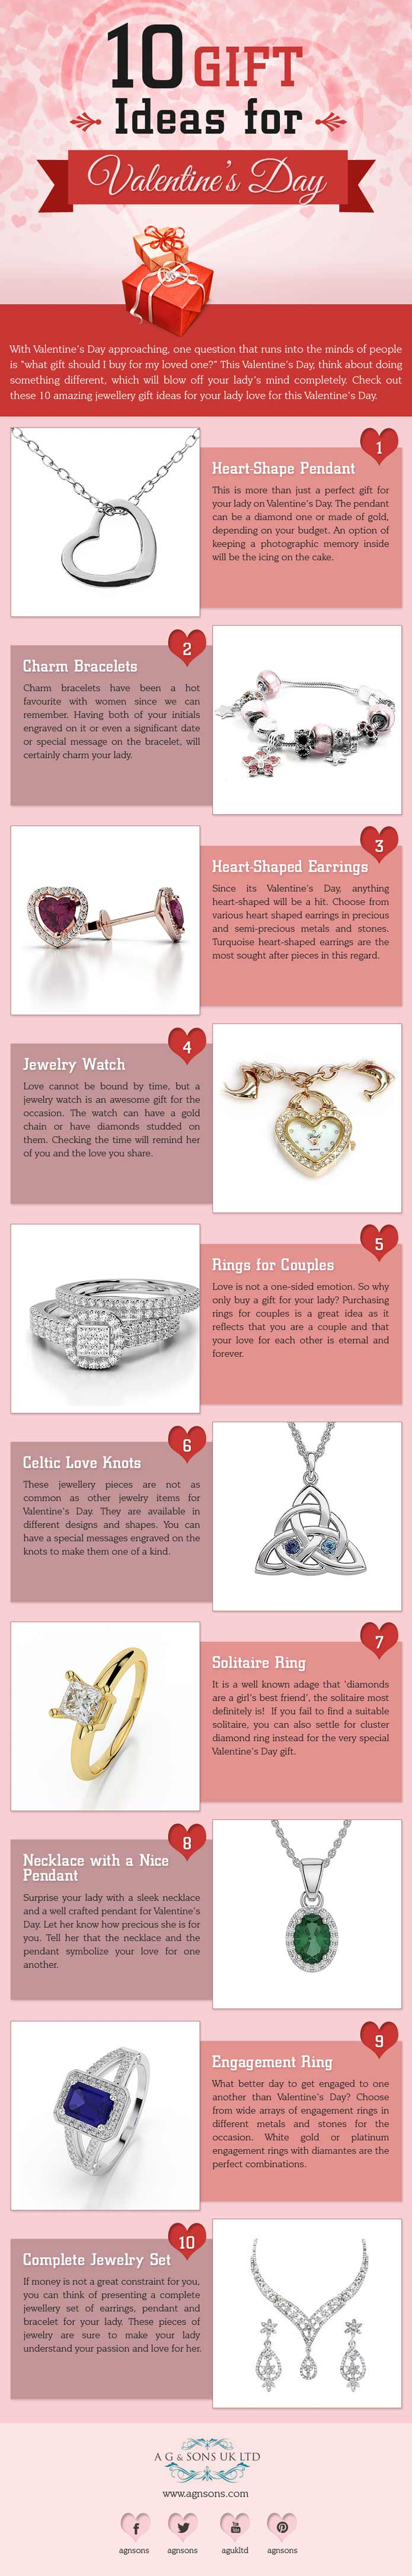 10 Gift Ideas for Woman on Valentine's Day